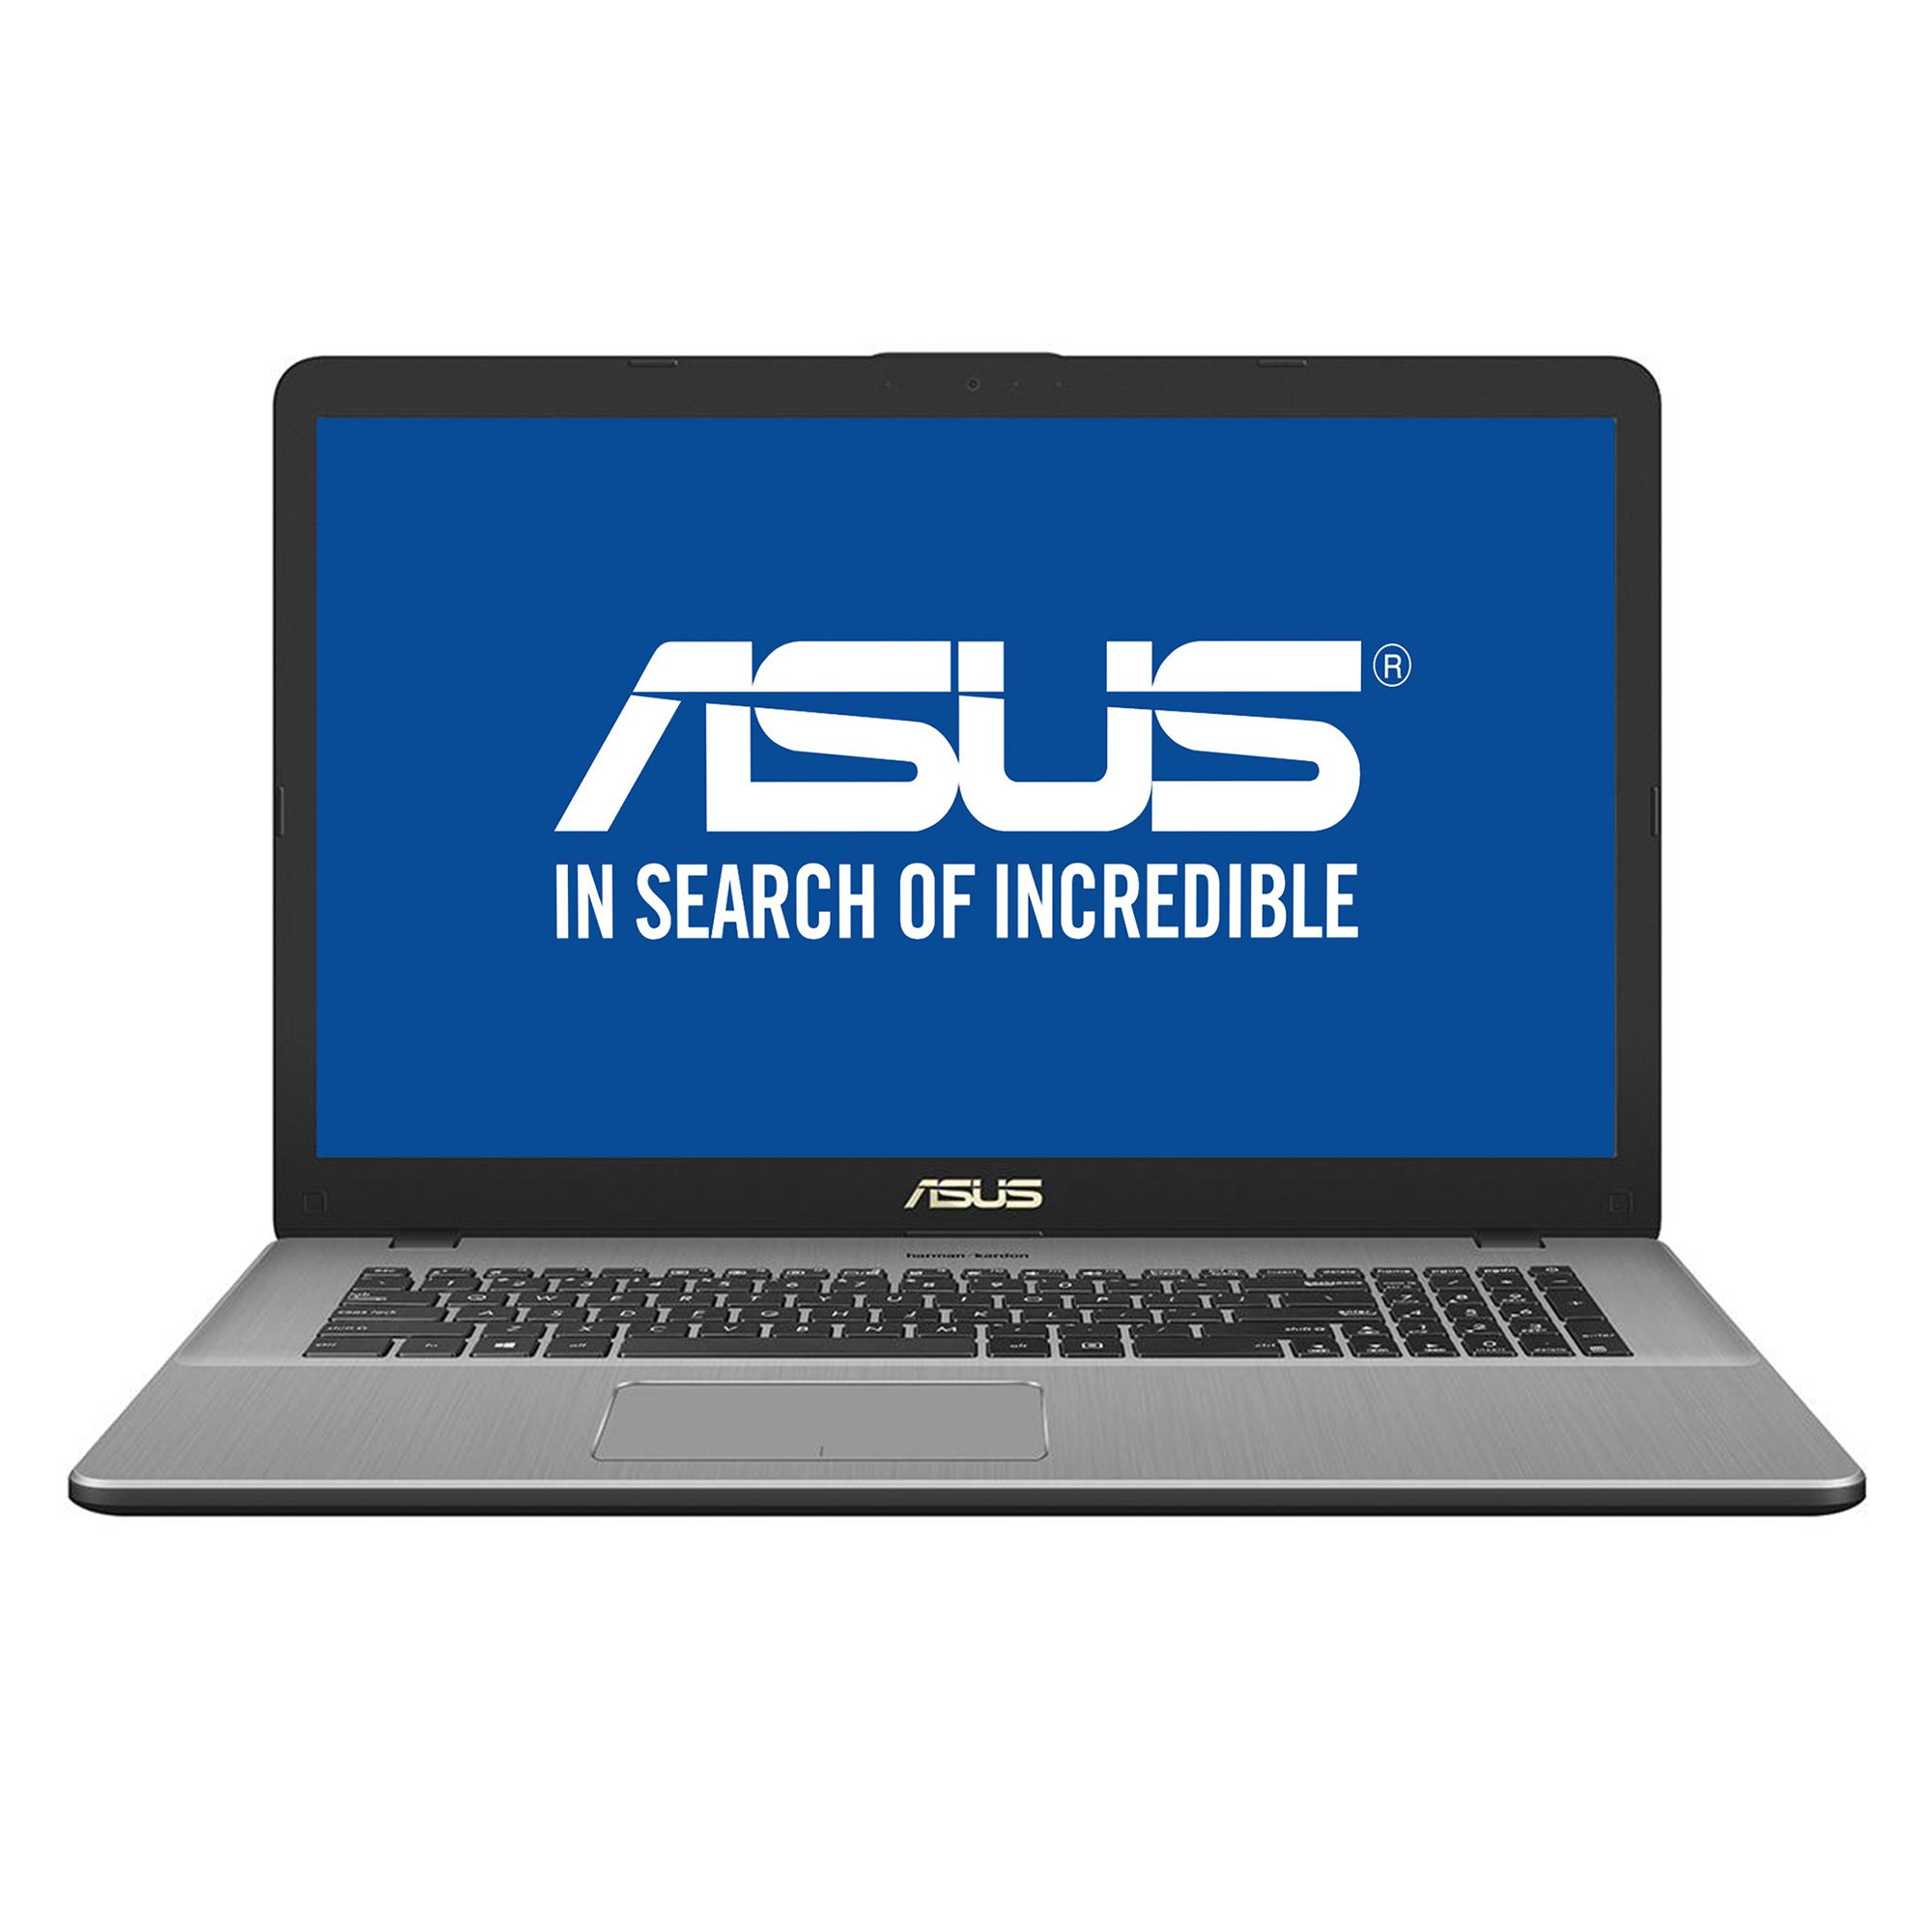 Notebook Asus VivoBook Pro N705UD 17.3 Full HD Intel Core i7-8550U GTX 1050-4GB RAM 8GB HDD 1TB + SSD 128GB Endless OS